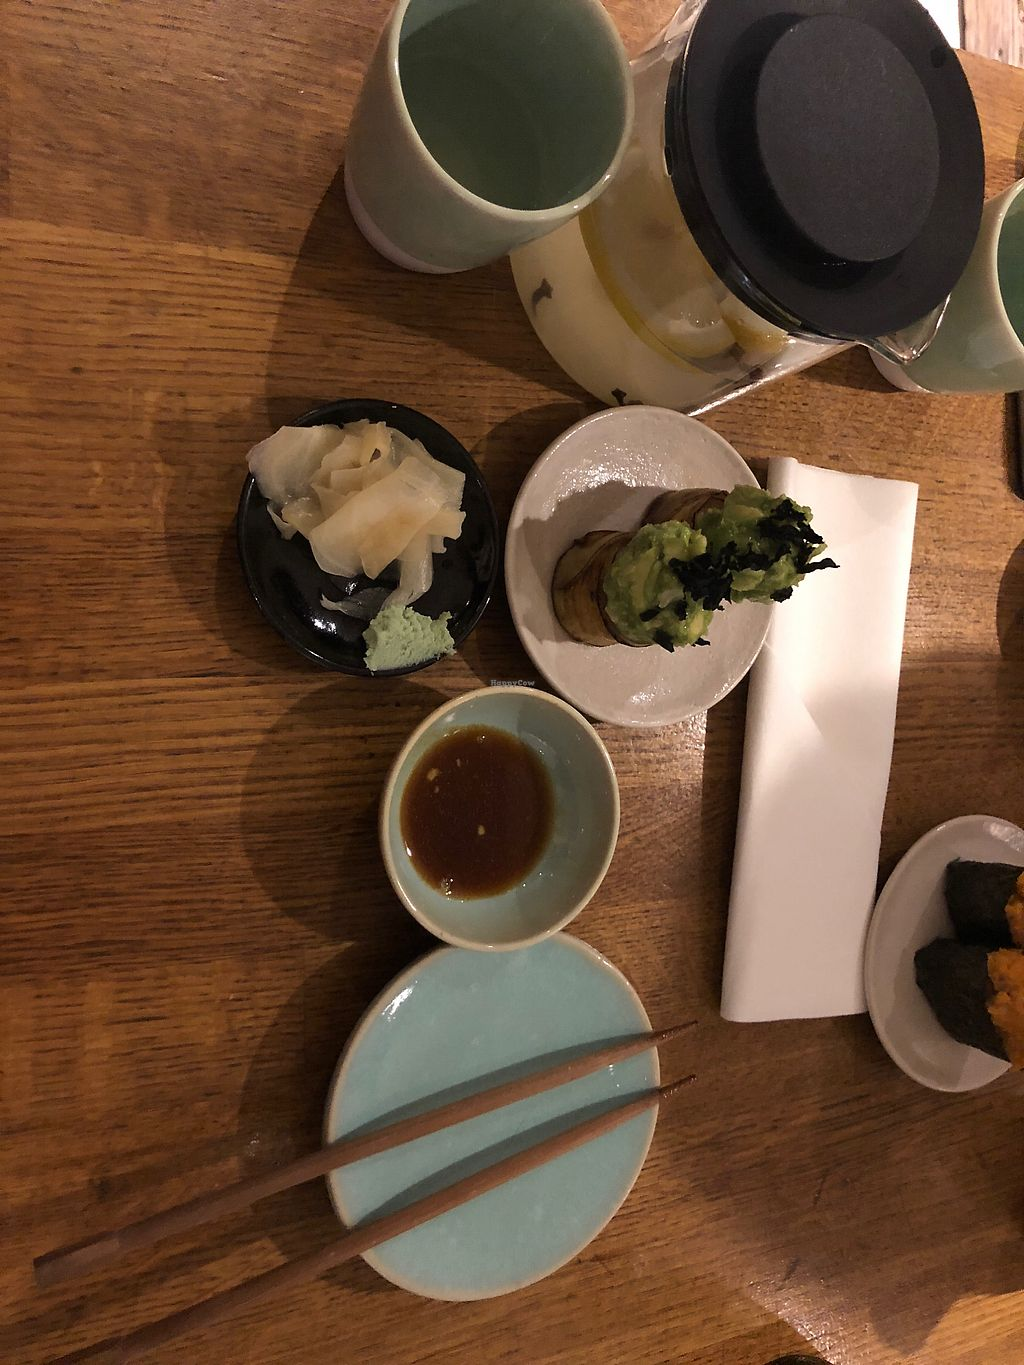 """Photo of Youmiko Vegan Sushi  by <a href=""""/members/profile/ElmiraDewes"""">ElmiraDewes</a> <br/>Eggplant sushi and ginger tea  <br/> January 27, 2018  - <a href='/contact/abuse/image/68693/351547'>Report</a>"""